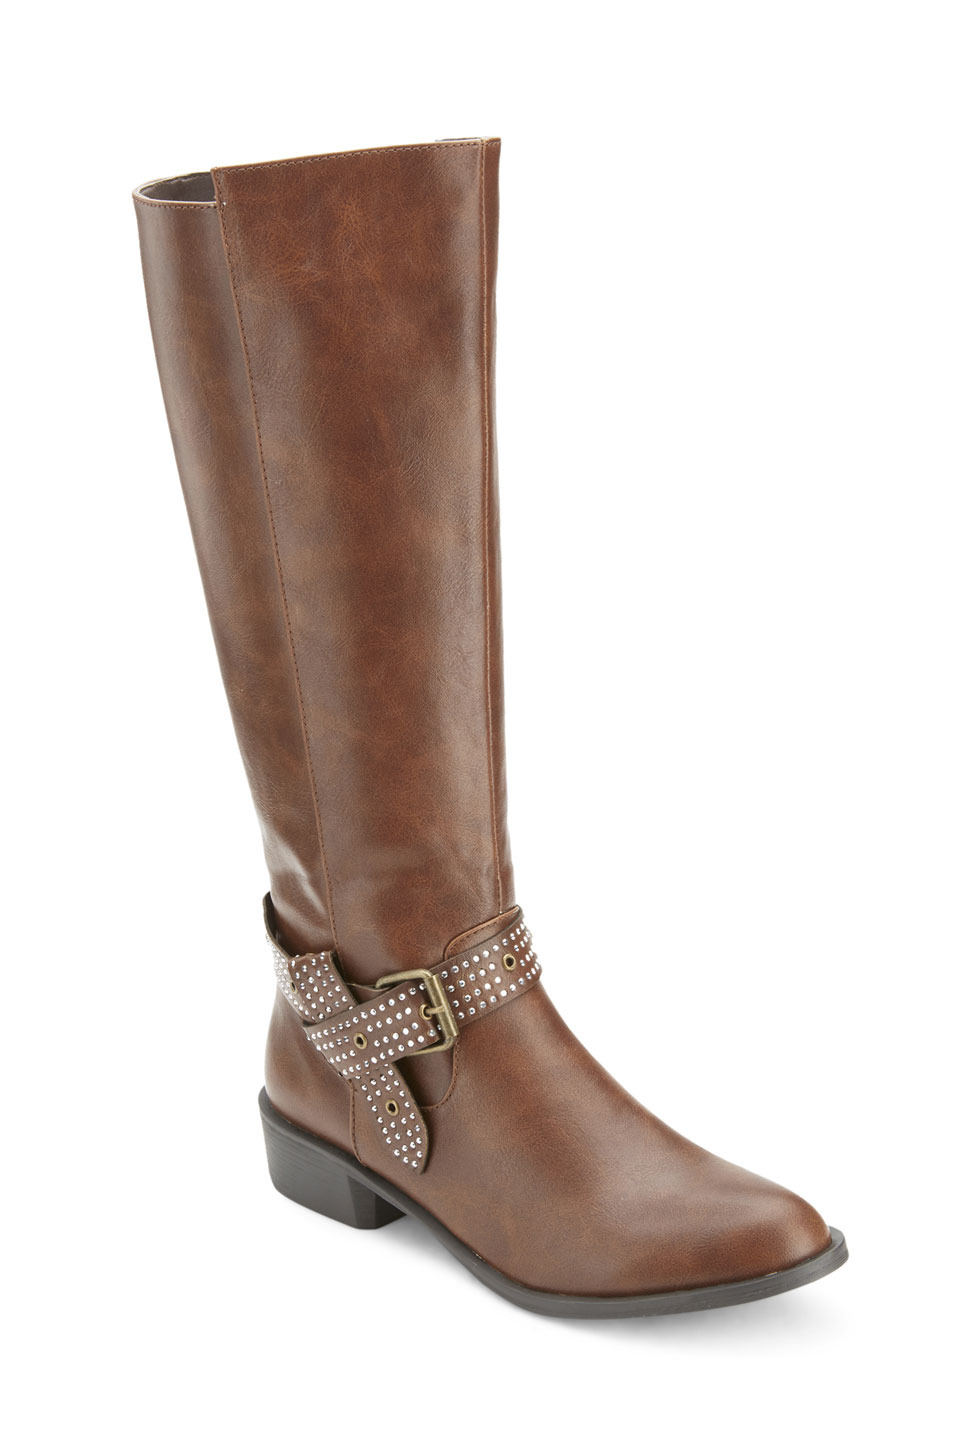 Whittier Studded Buckle Strap Riding Boots in Cognac